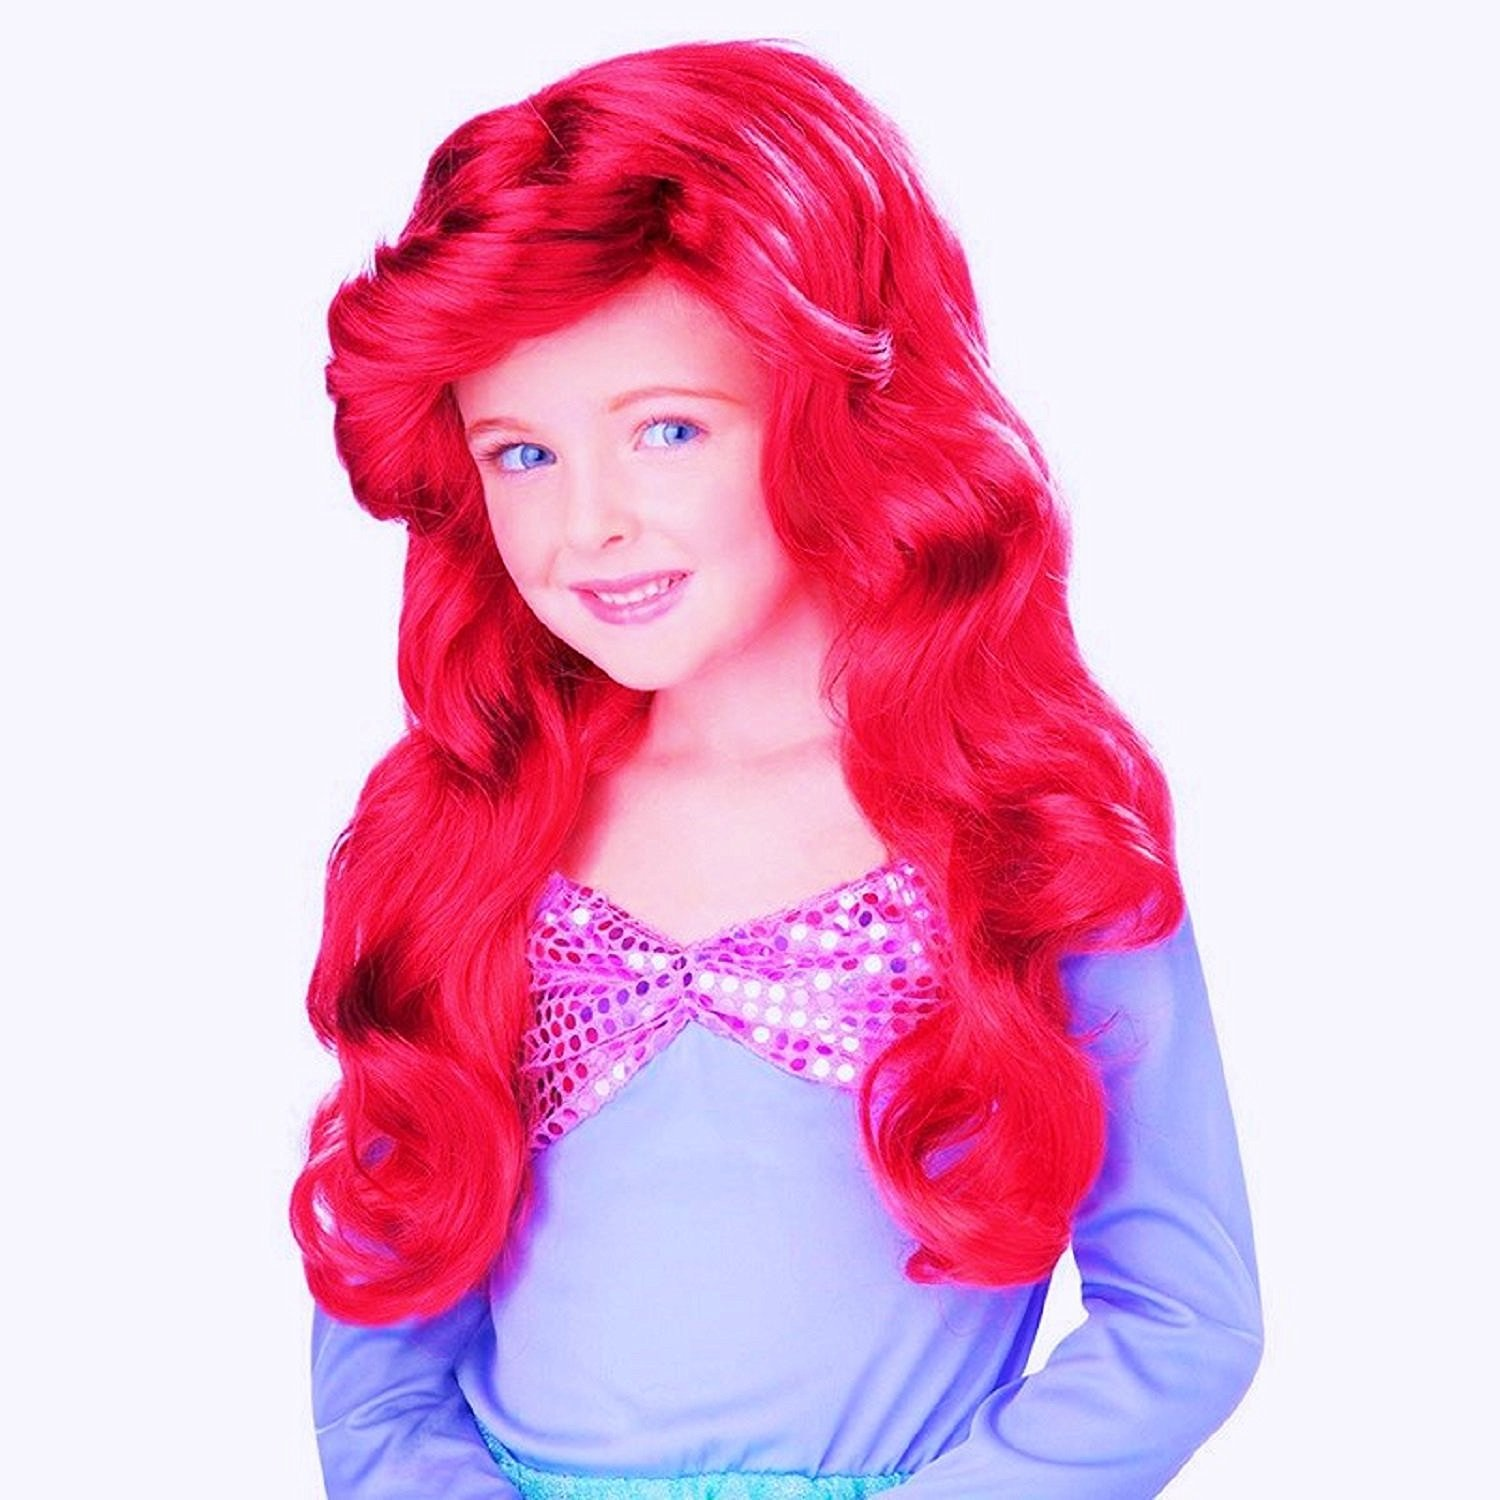 Party Hair Children's Ariel Wig, Princess Wig, Long red Wig, Mermaid Wig